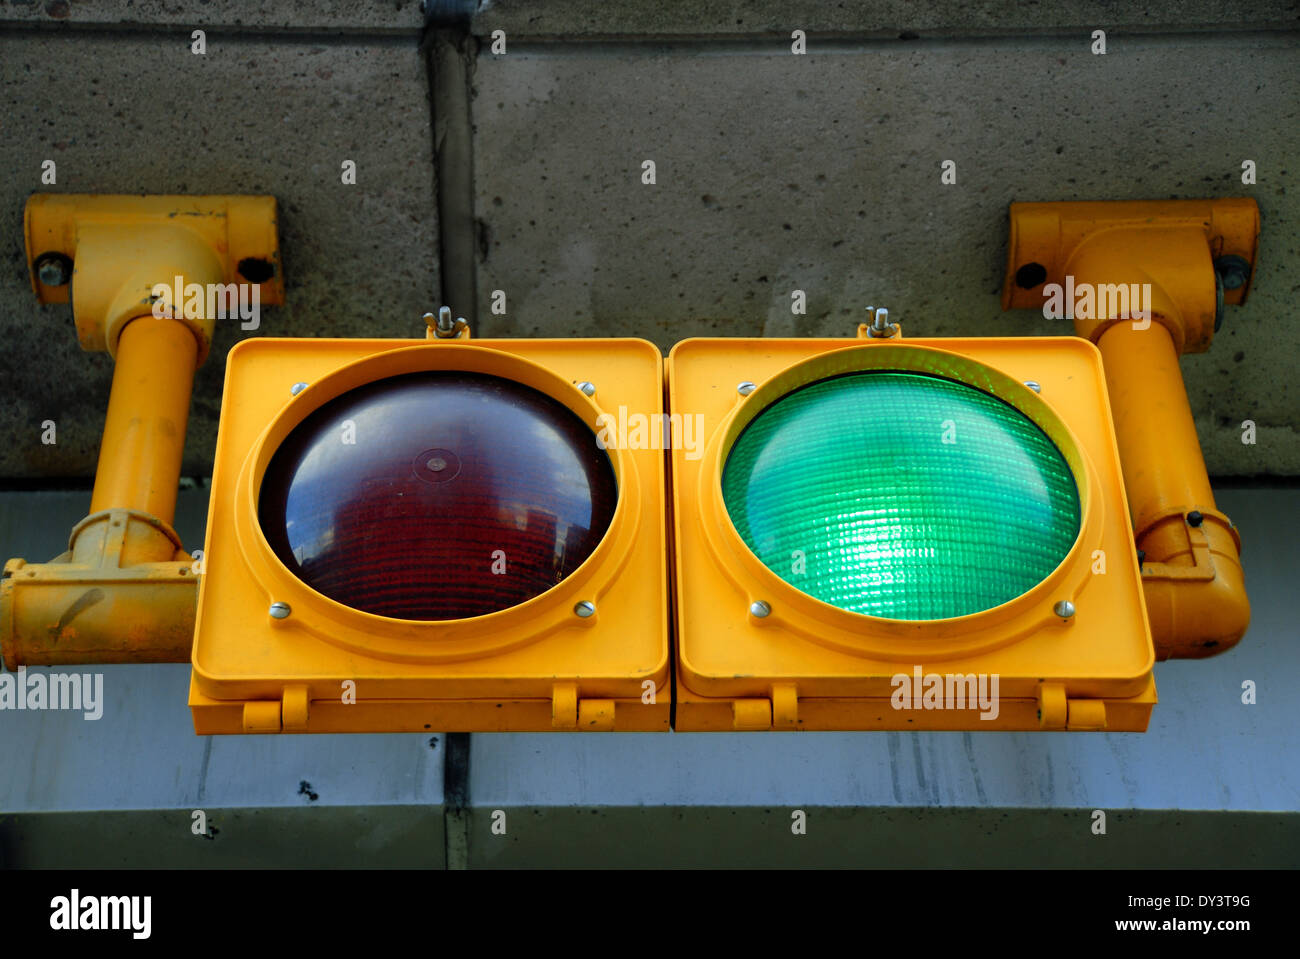 A Traffic Light At A Parking Garage Is Illuminated Green For Go